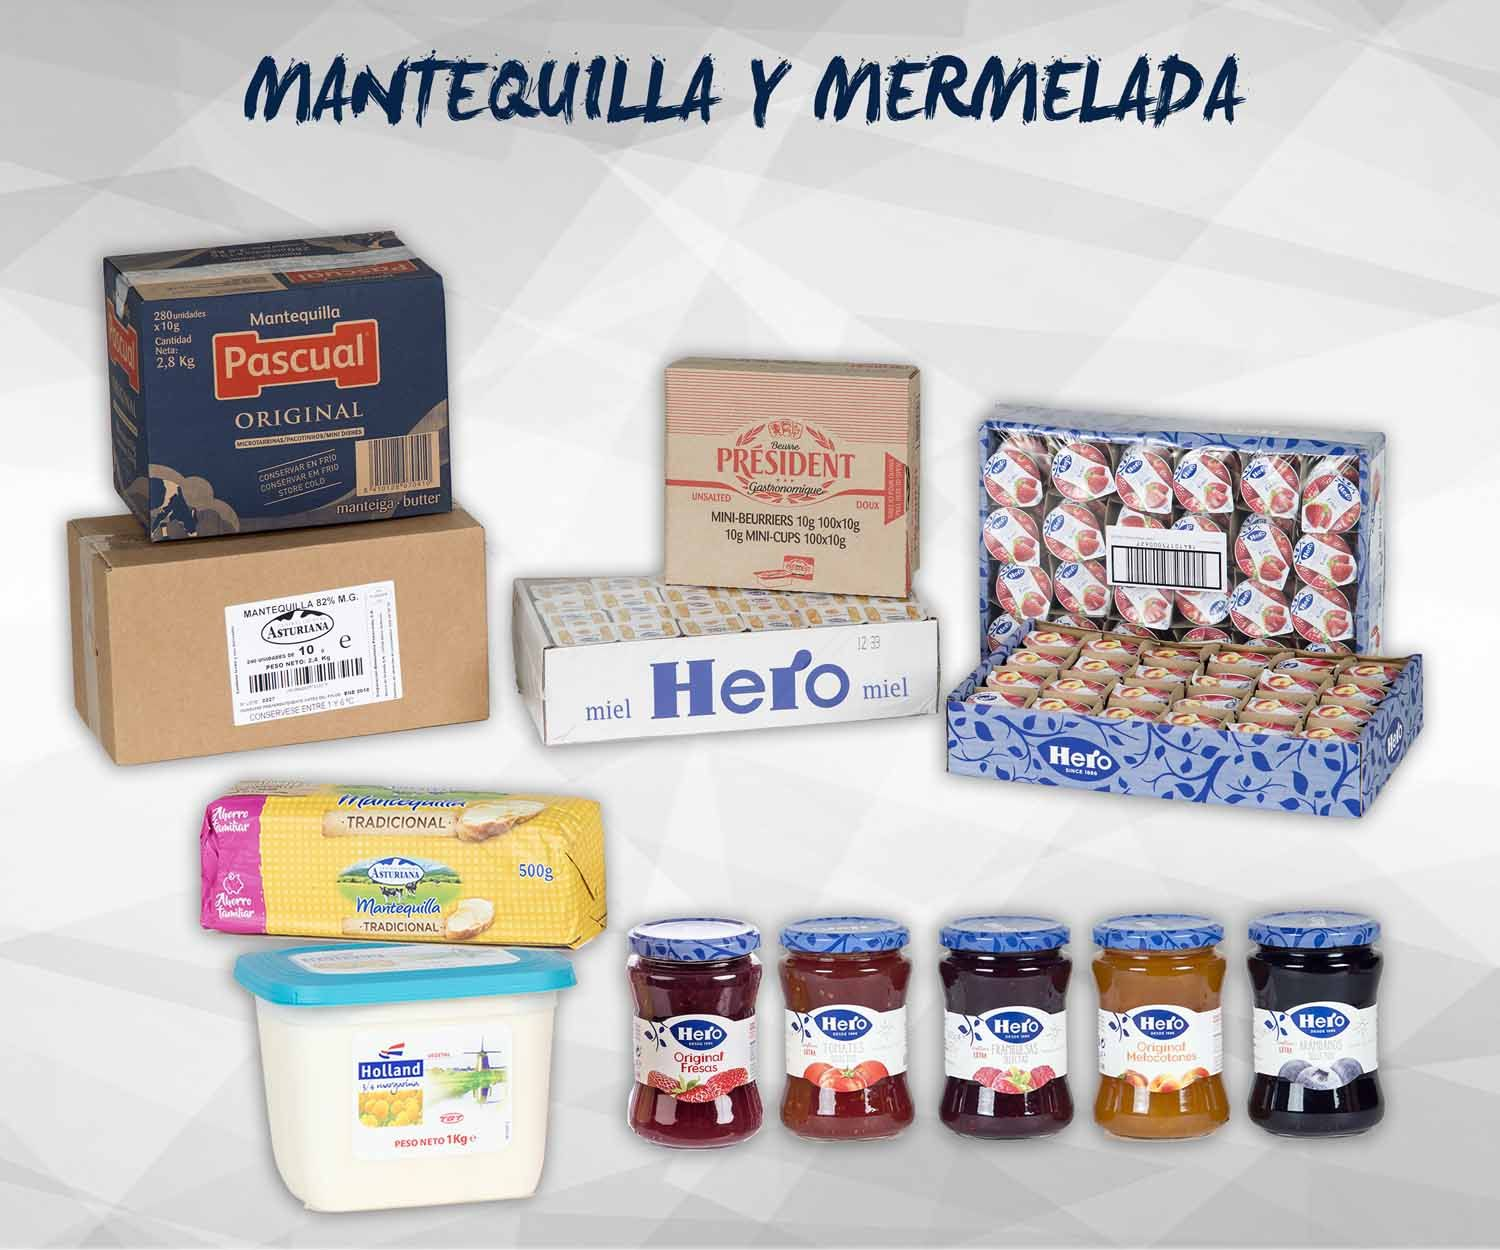 Mantequillas y mermeladas: Productos de Exclusivas San Luis